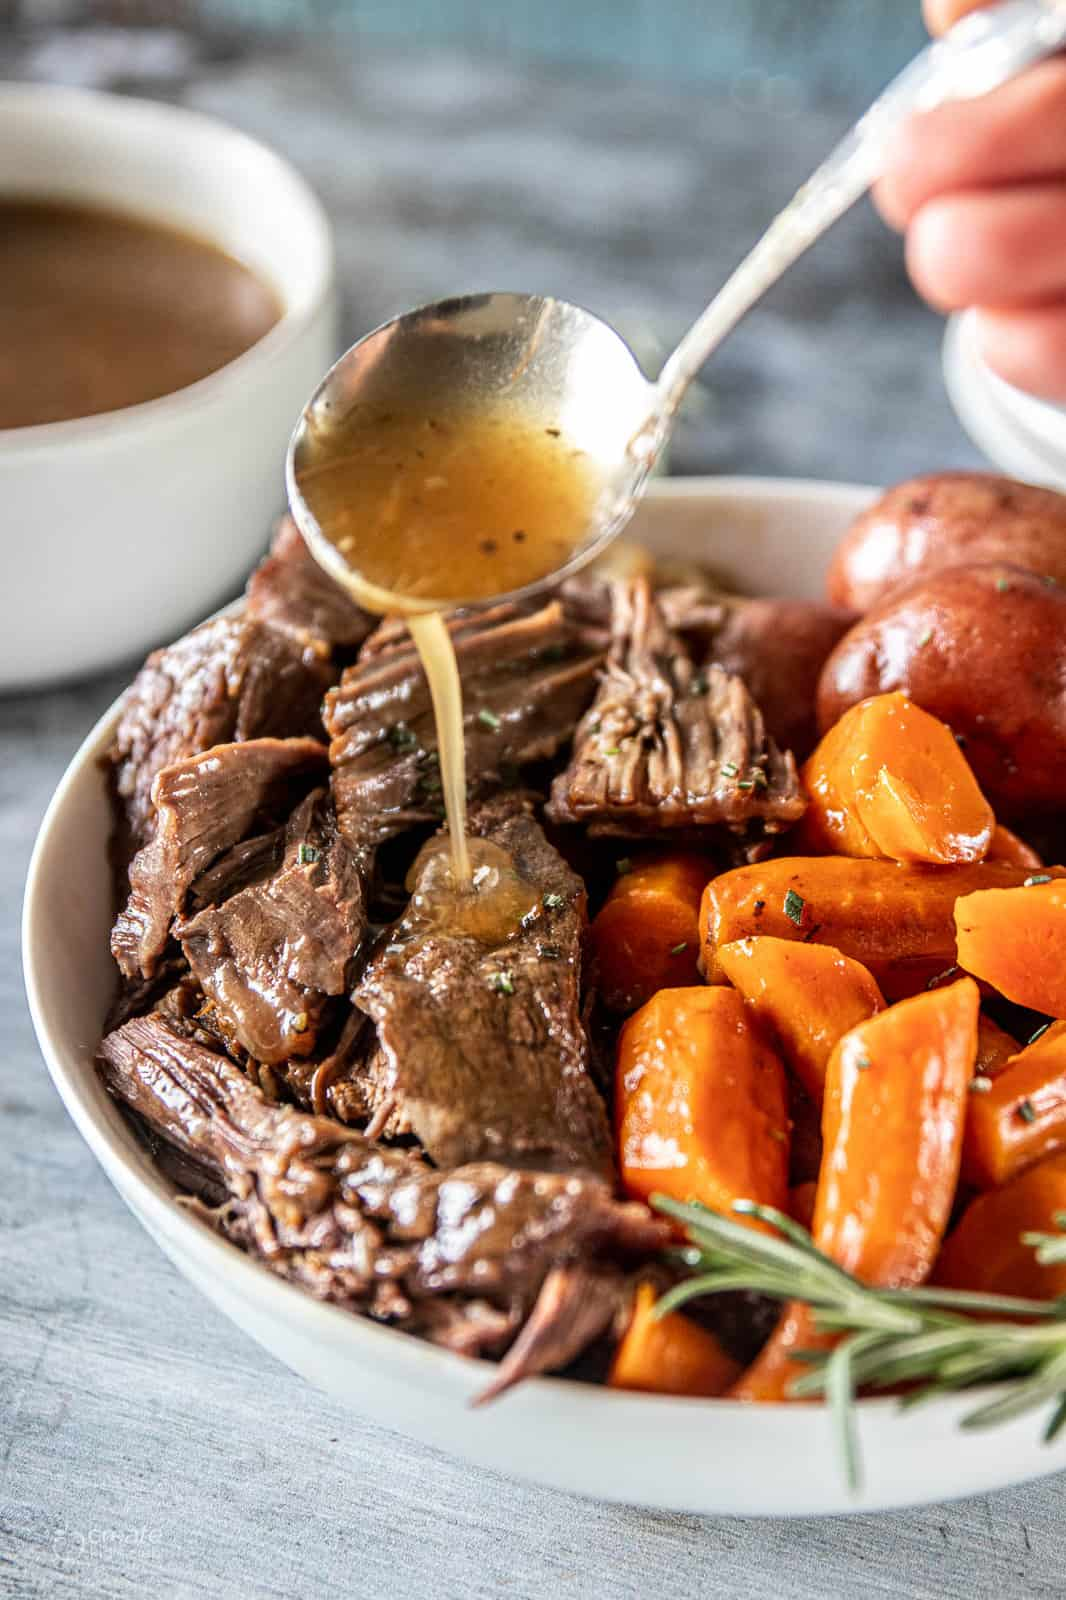 Instant pot roast beef showing gravy being drizzled over it next to carrots and potatoes.